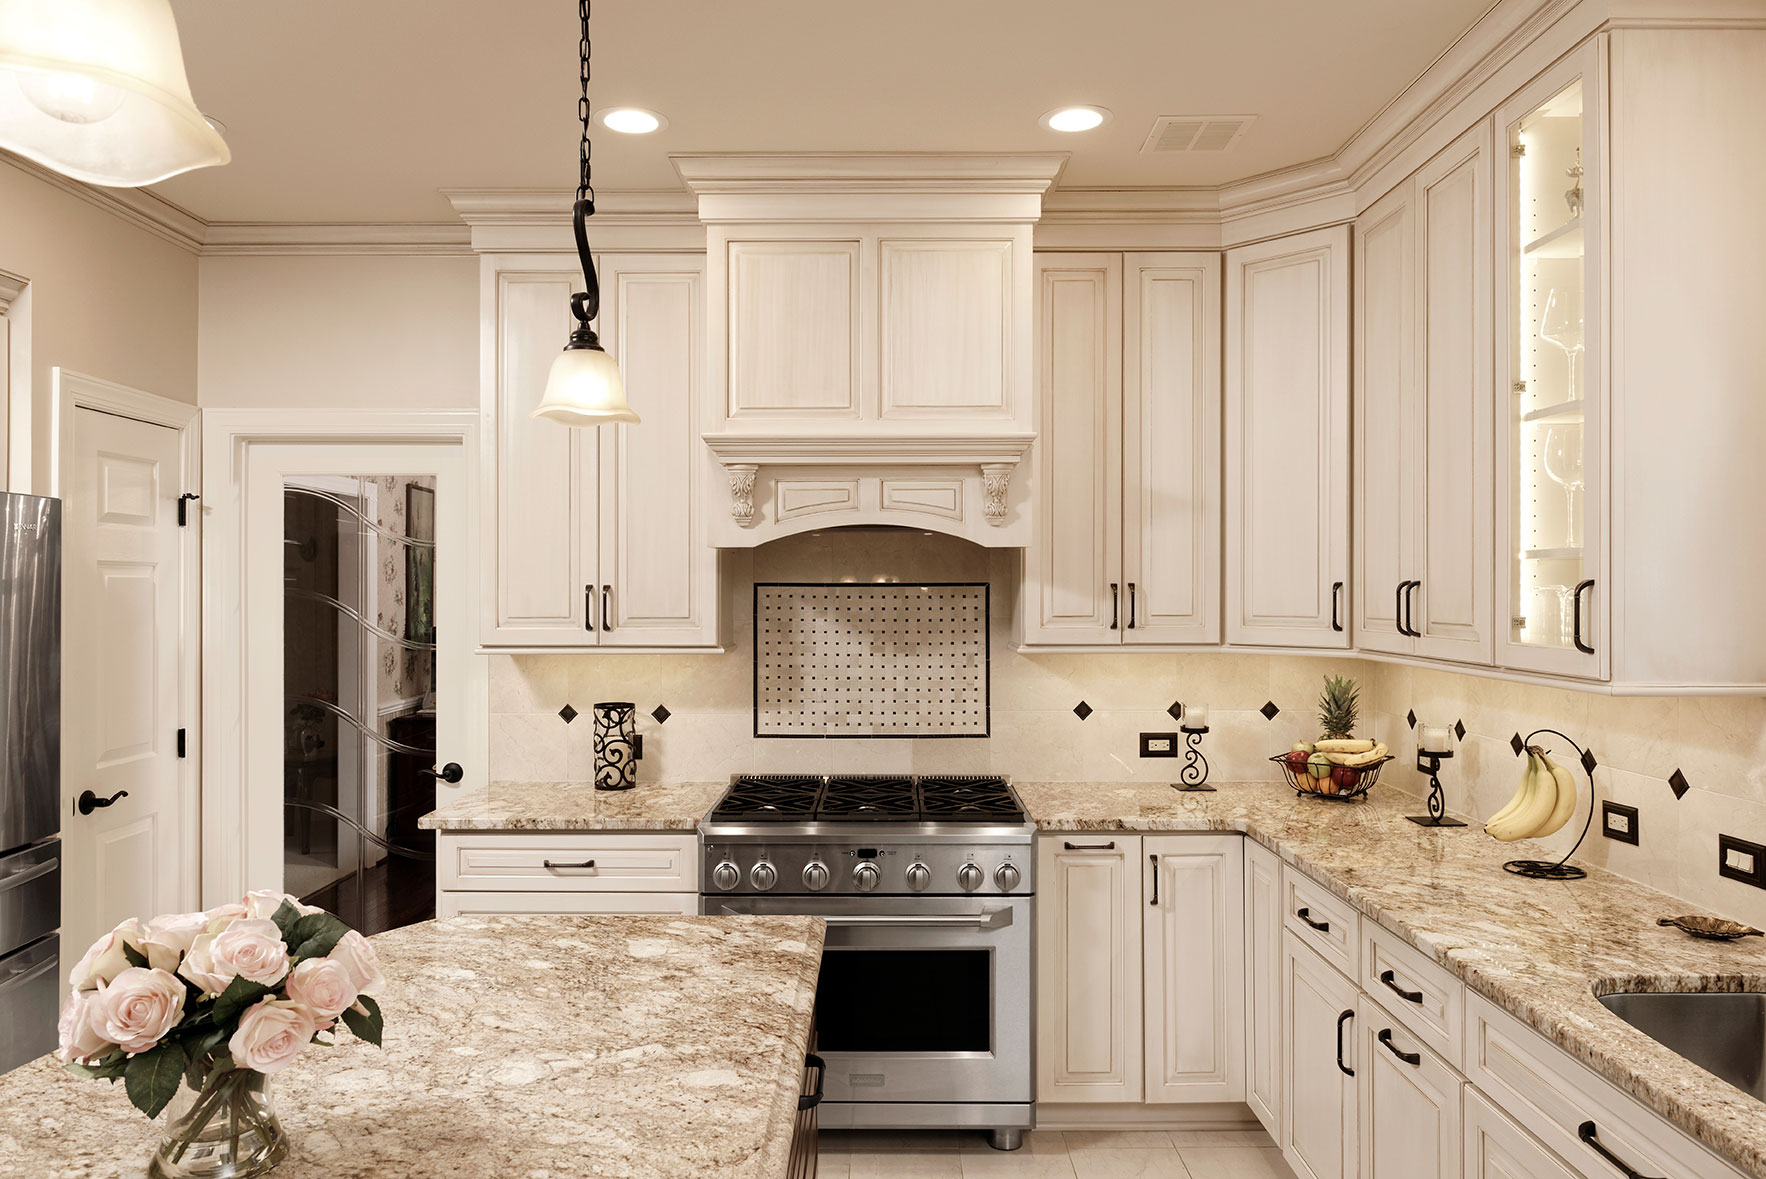 Take a Look at These Awesome Nvs Kitchen And Bath Pics ...